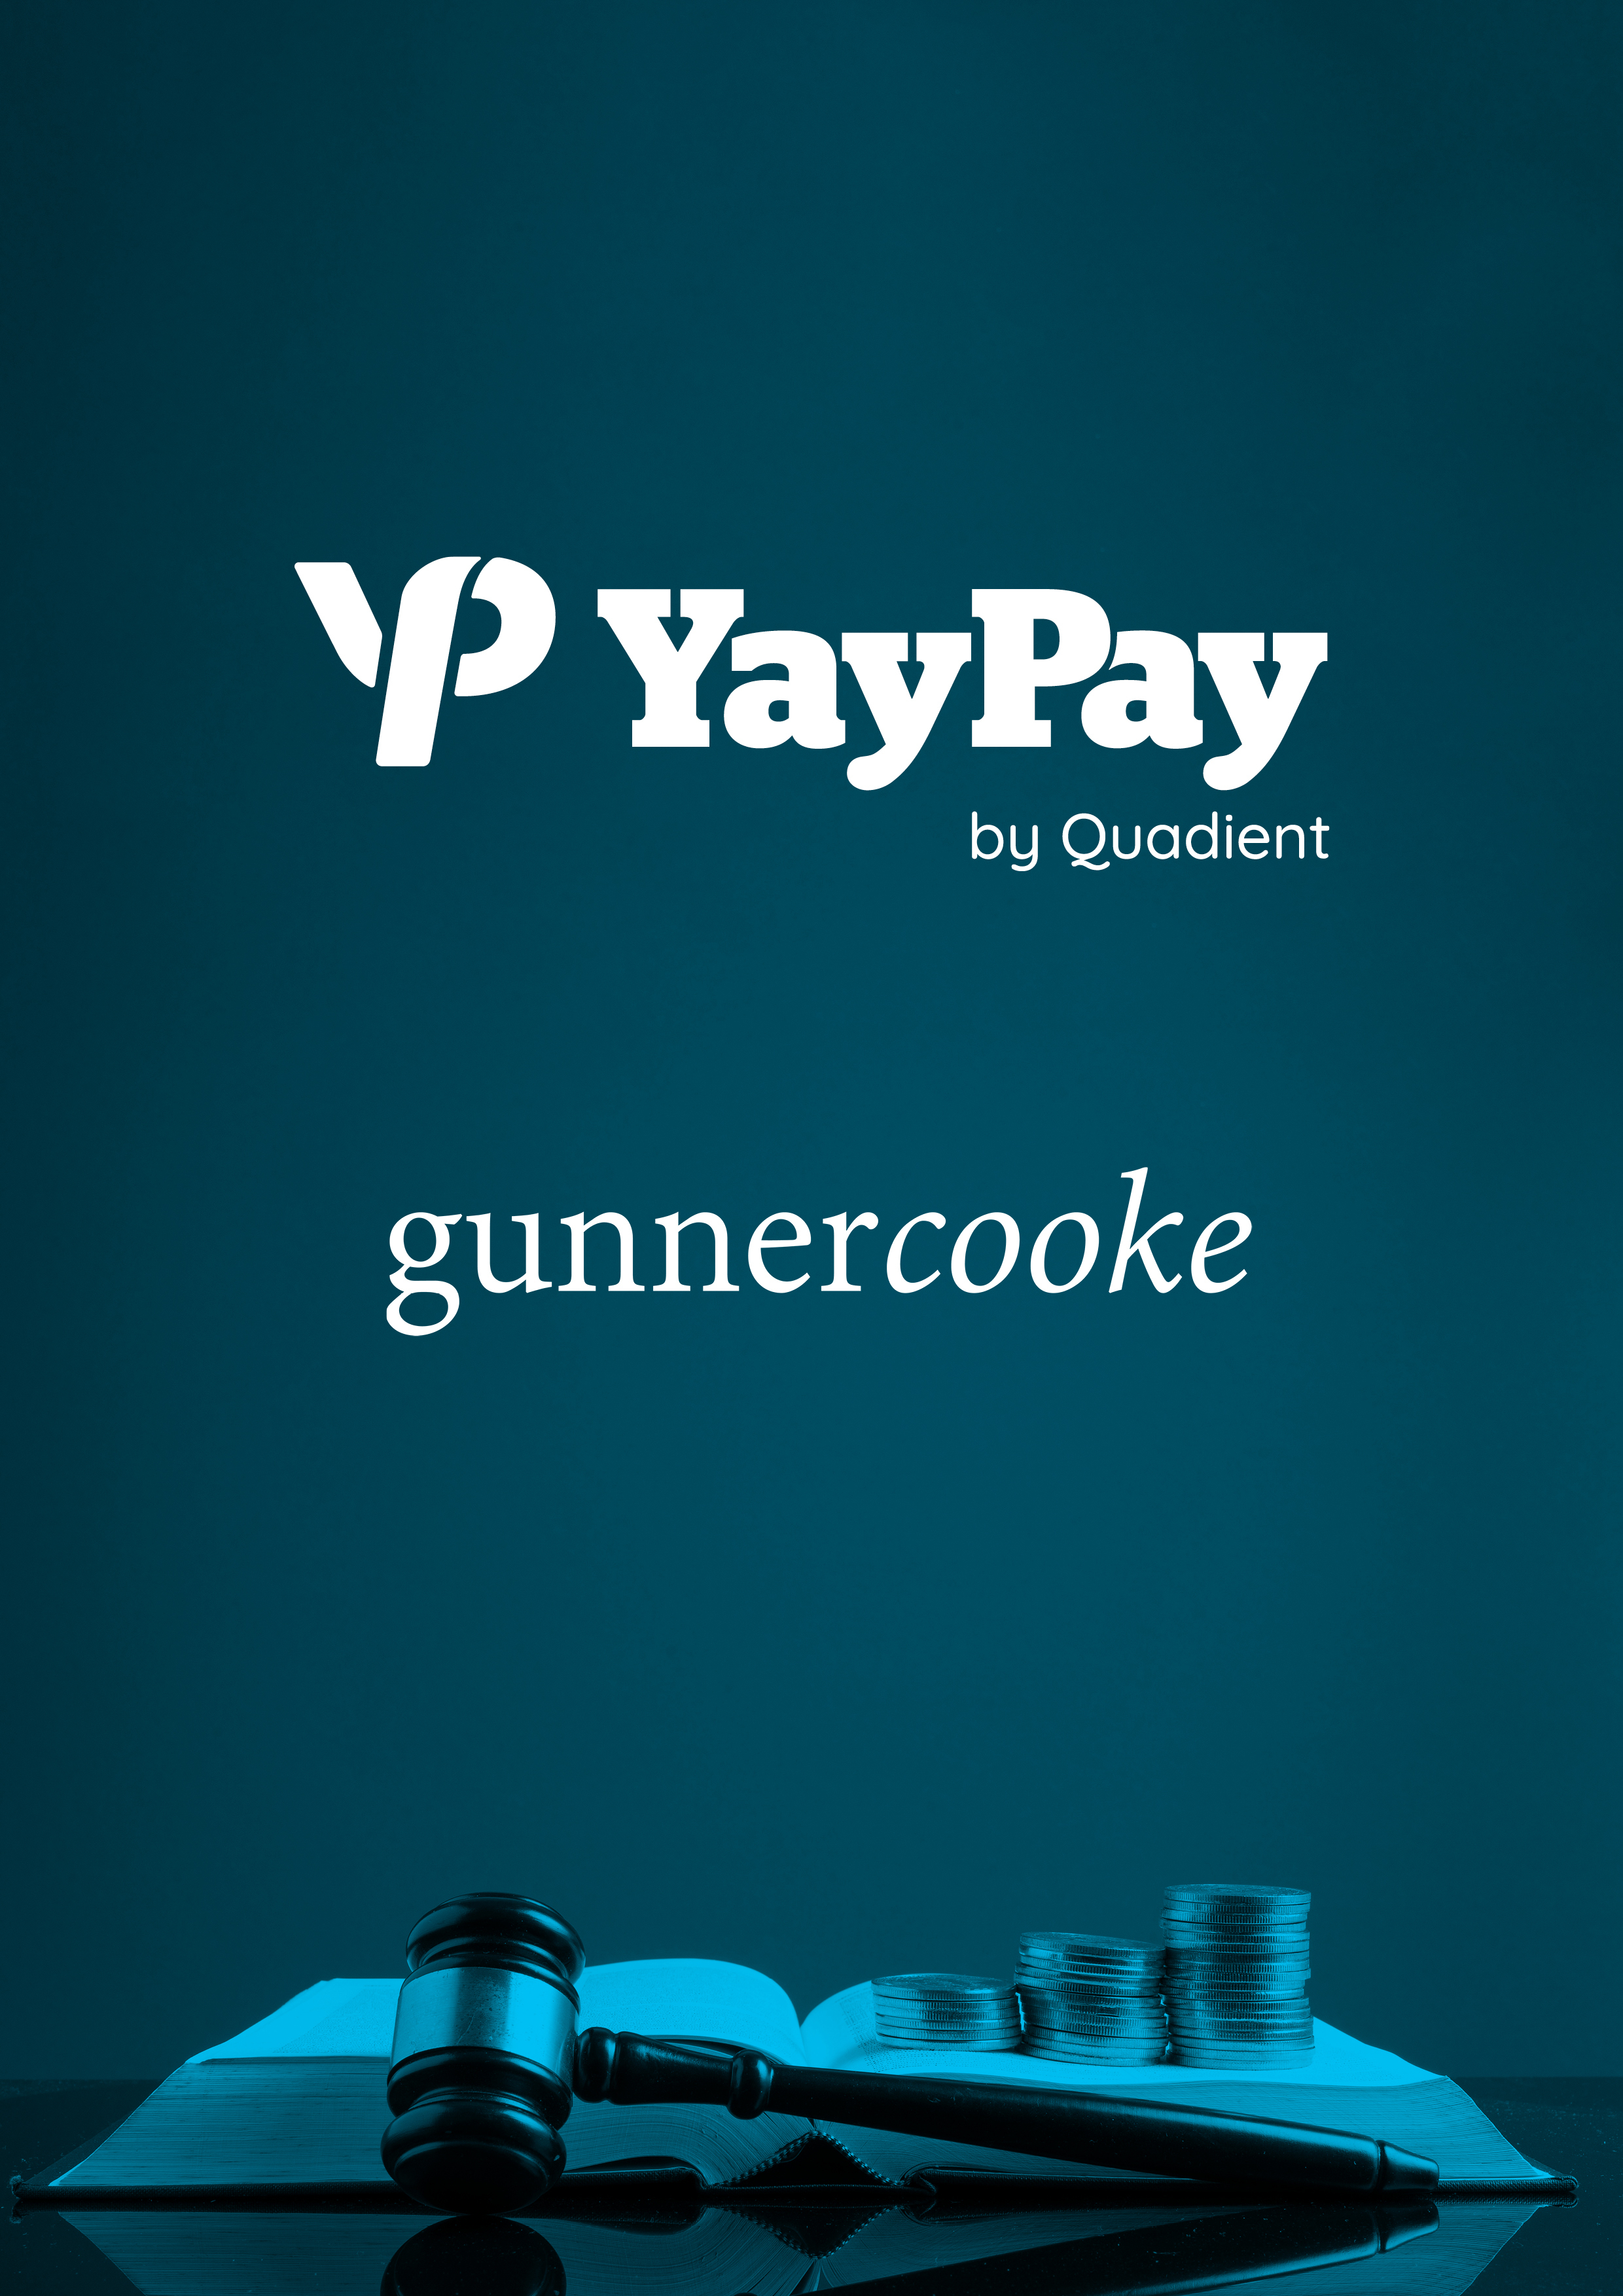 Gunnercooke Selects YayPay by Quadient to Automate Accounts Receivables and Enhance Customer Experience